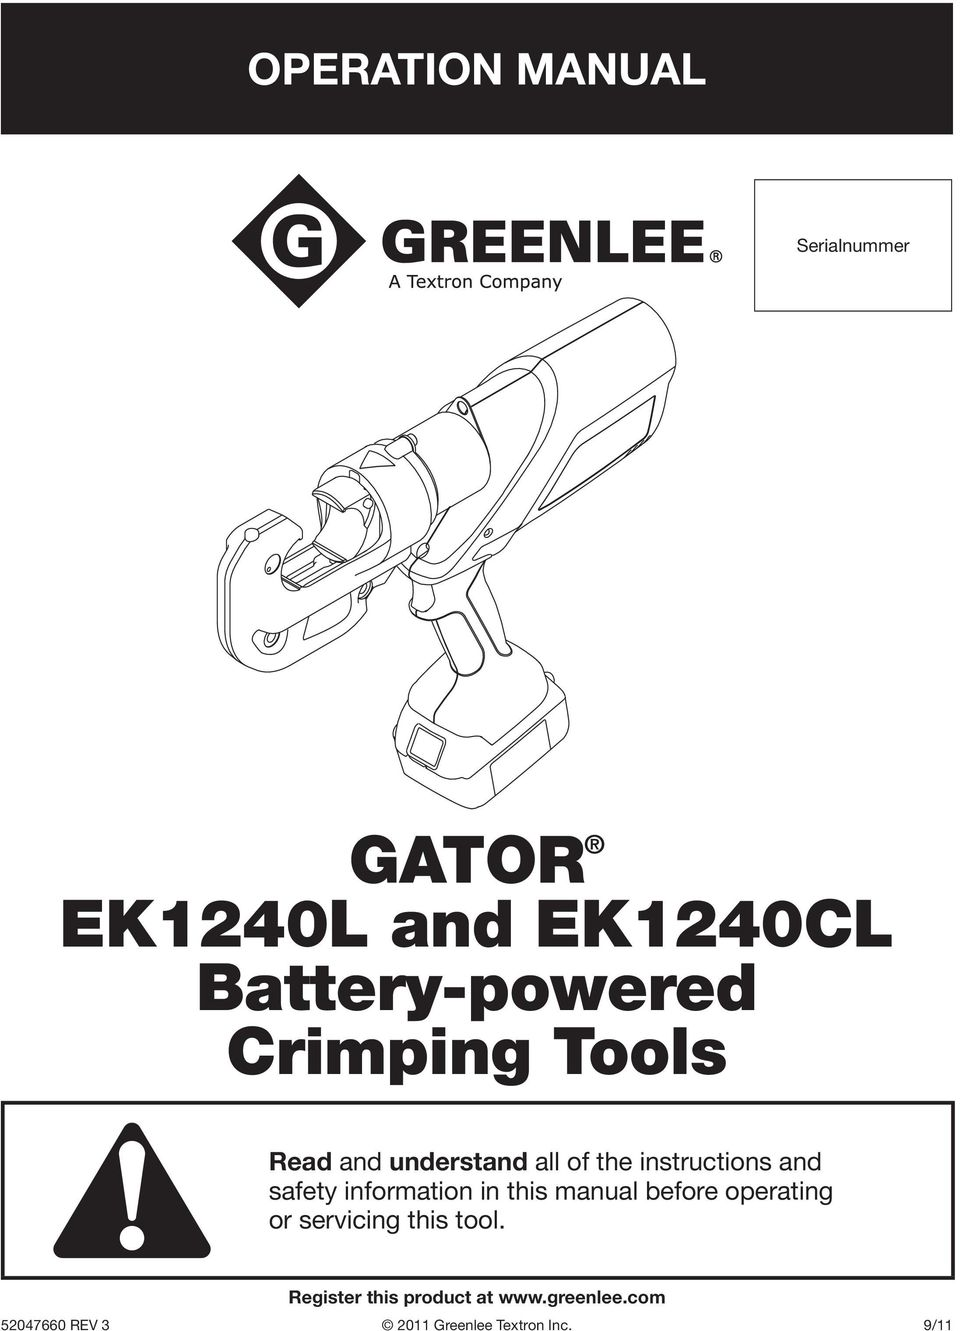 Gator Ek1240l And Ek1240cl Battery Powered Crimping Tools Pdf Wiring Diagram Of A Information In This Manual Before Operating Or Servicing Tool